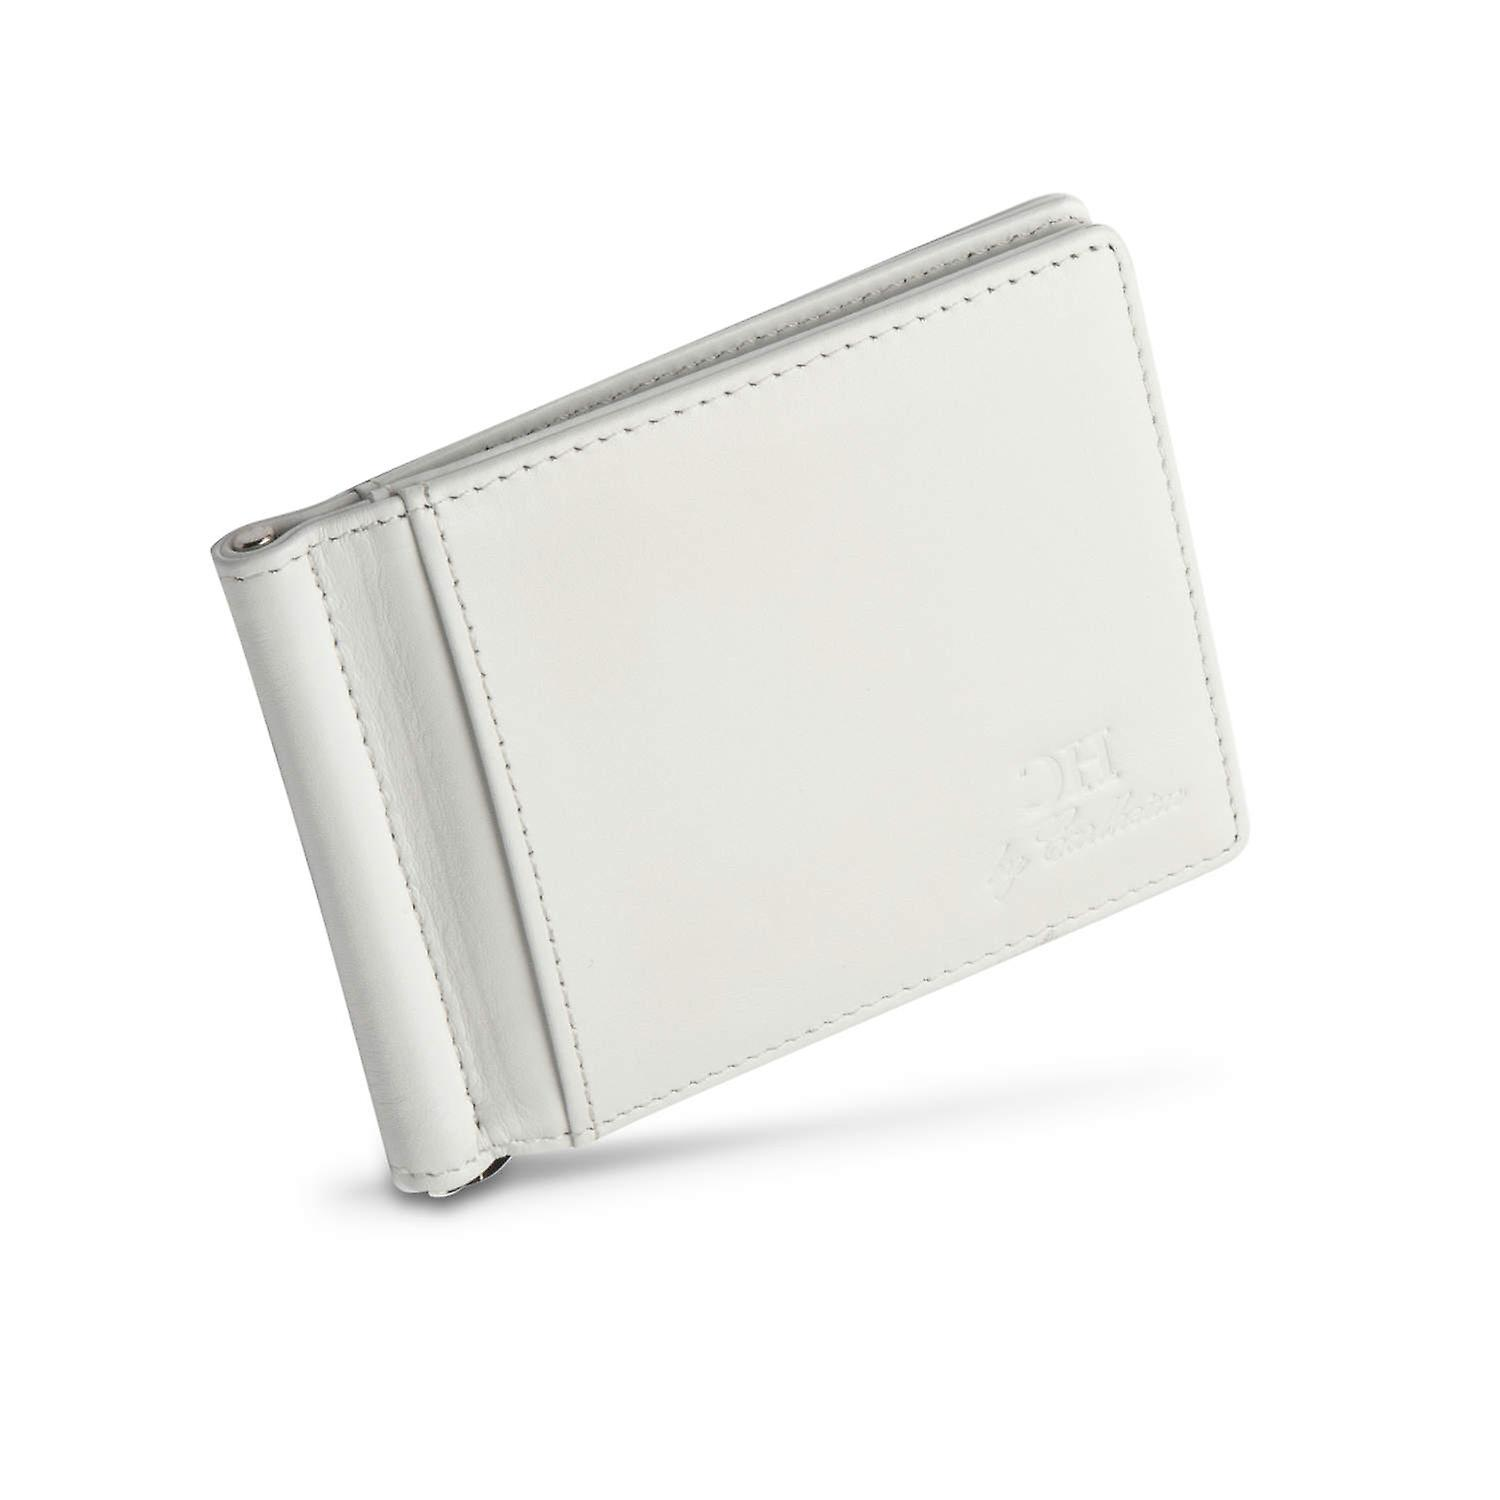 Full RFID Blocking | Wallet with Money Clip | White Leather